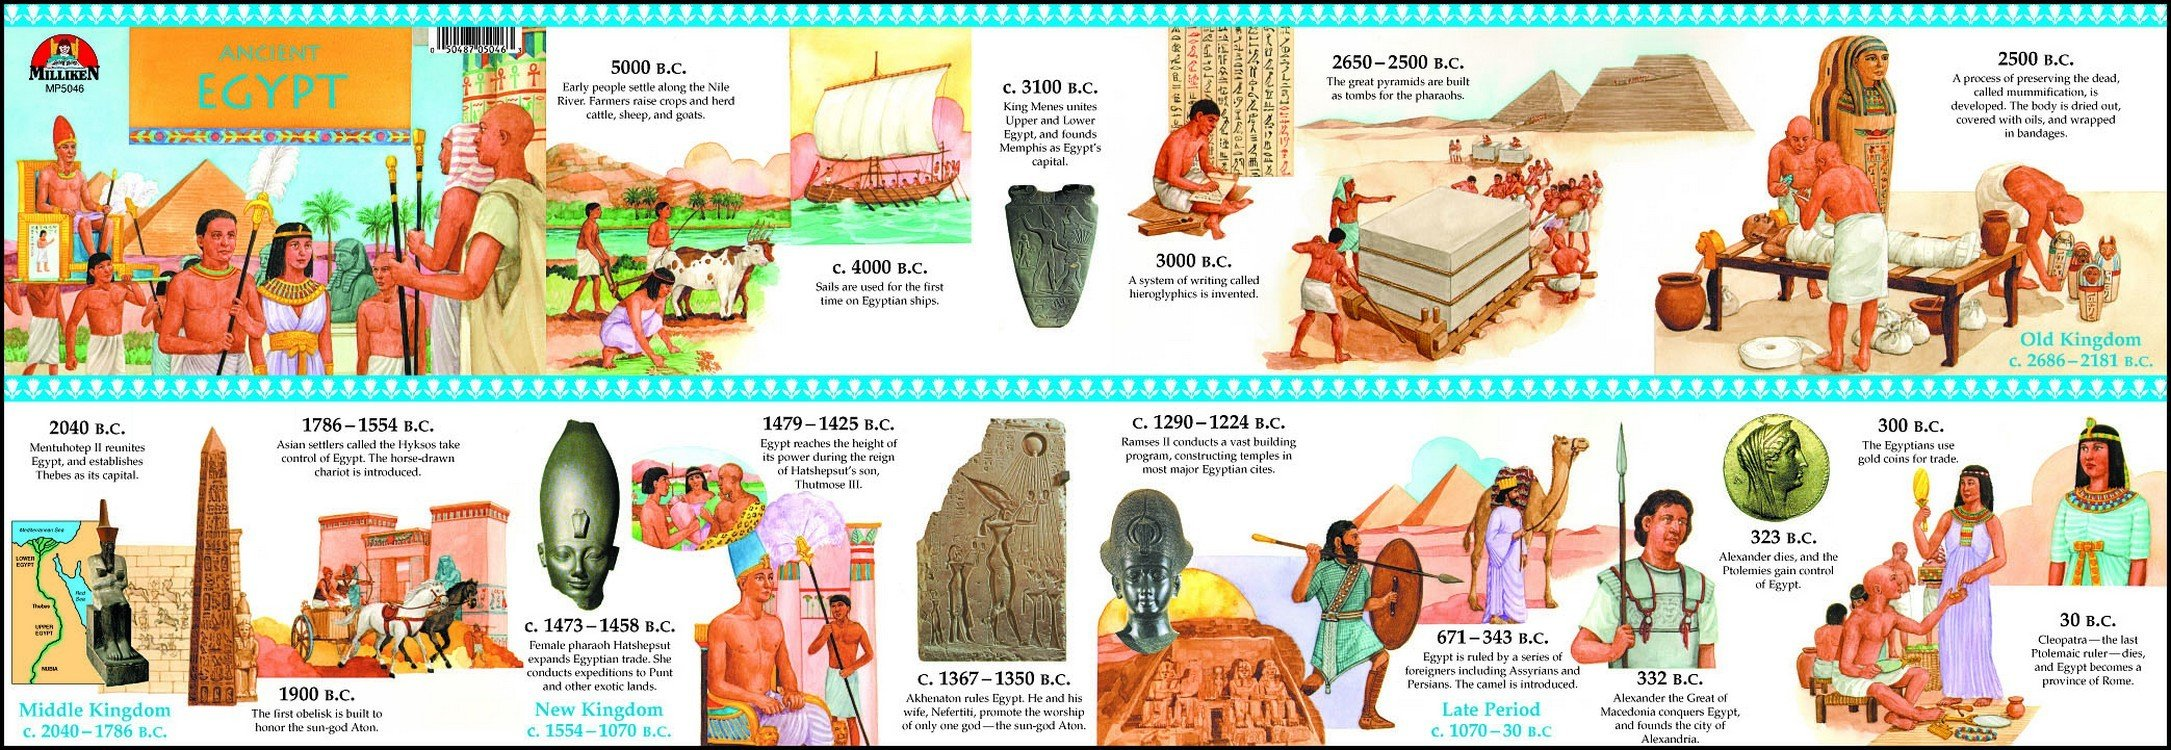 Ancient egypt timeline milliken publishing 9780787704049 amazon ancient egypt timeline milliken publishing 9780787704049 amazon books altavistaventures Images